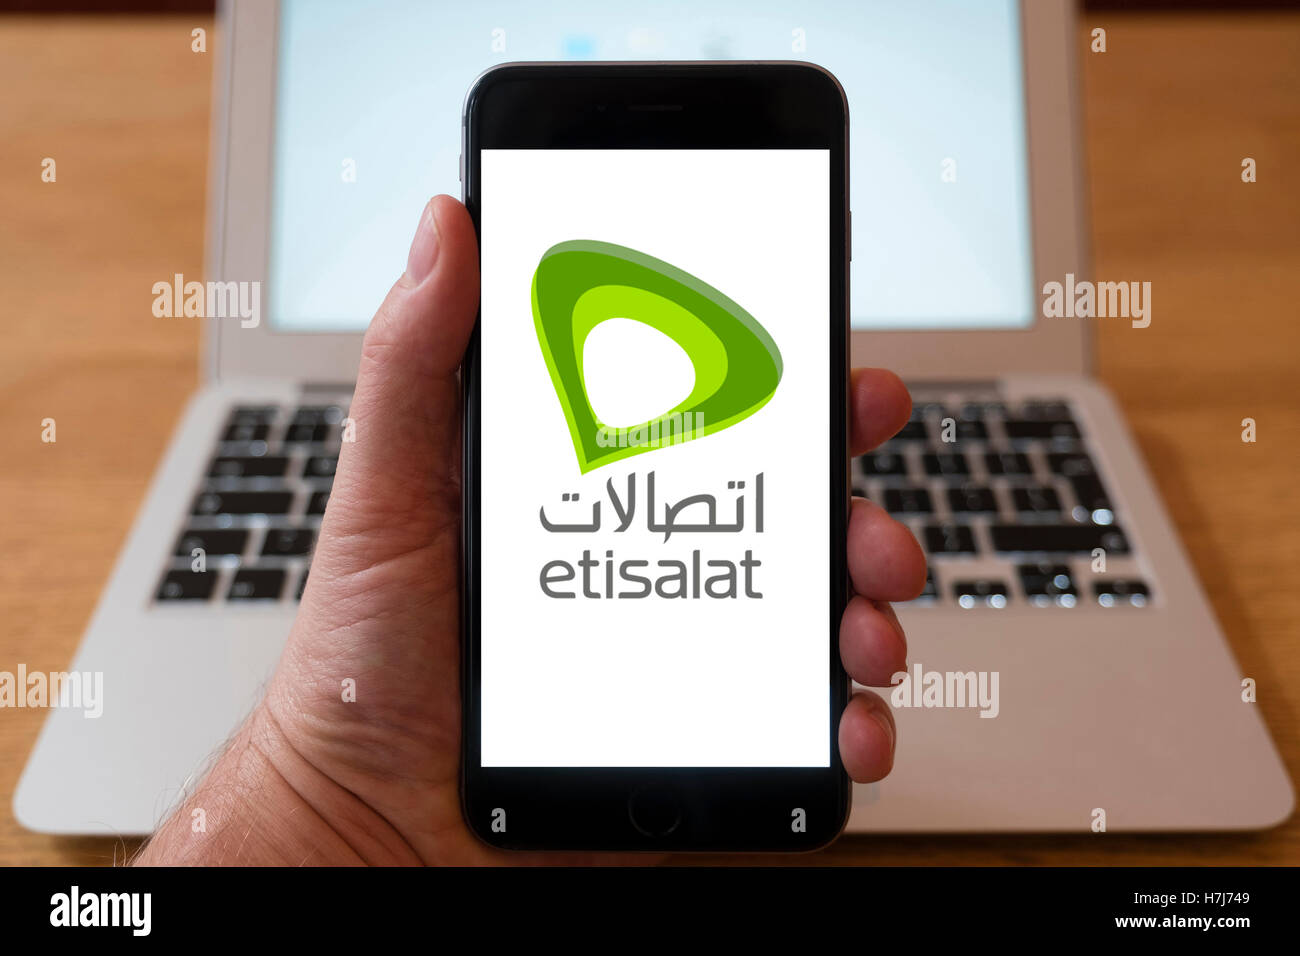 Using iPhone smartphone to display logo of Etisalat the mobile phone